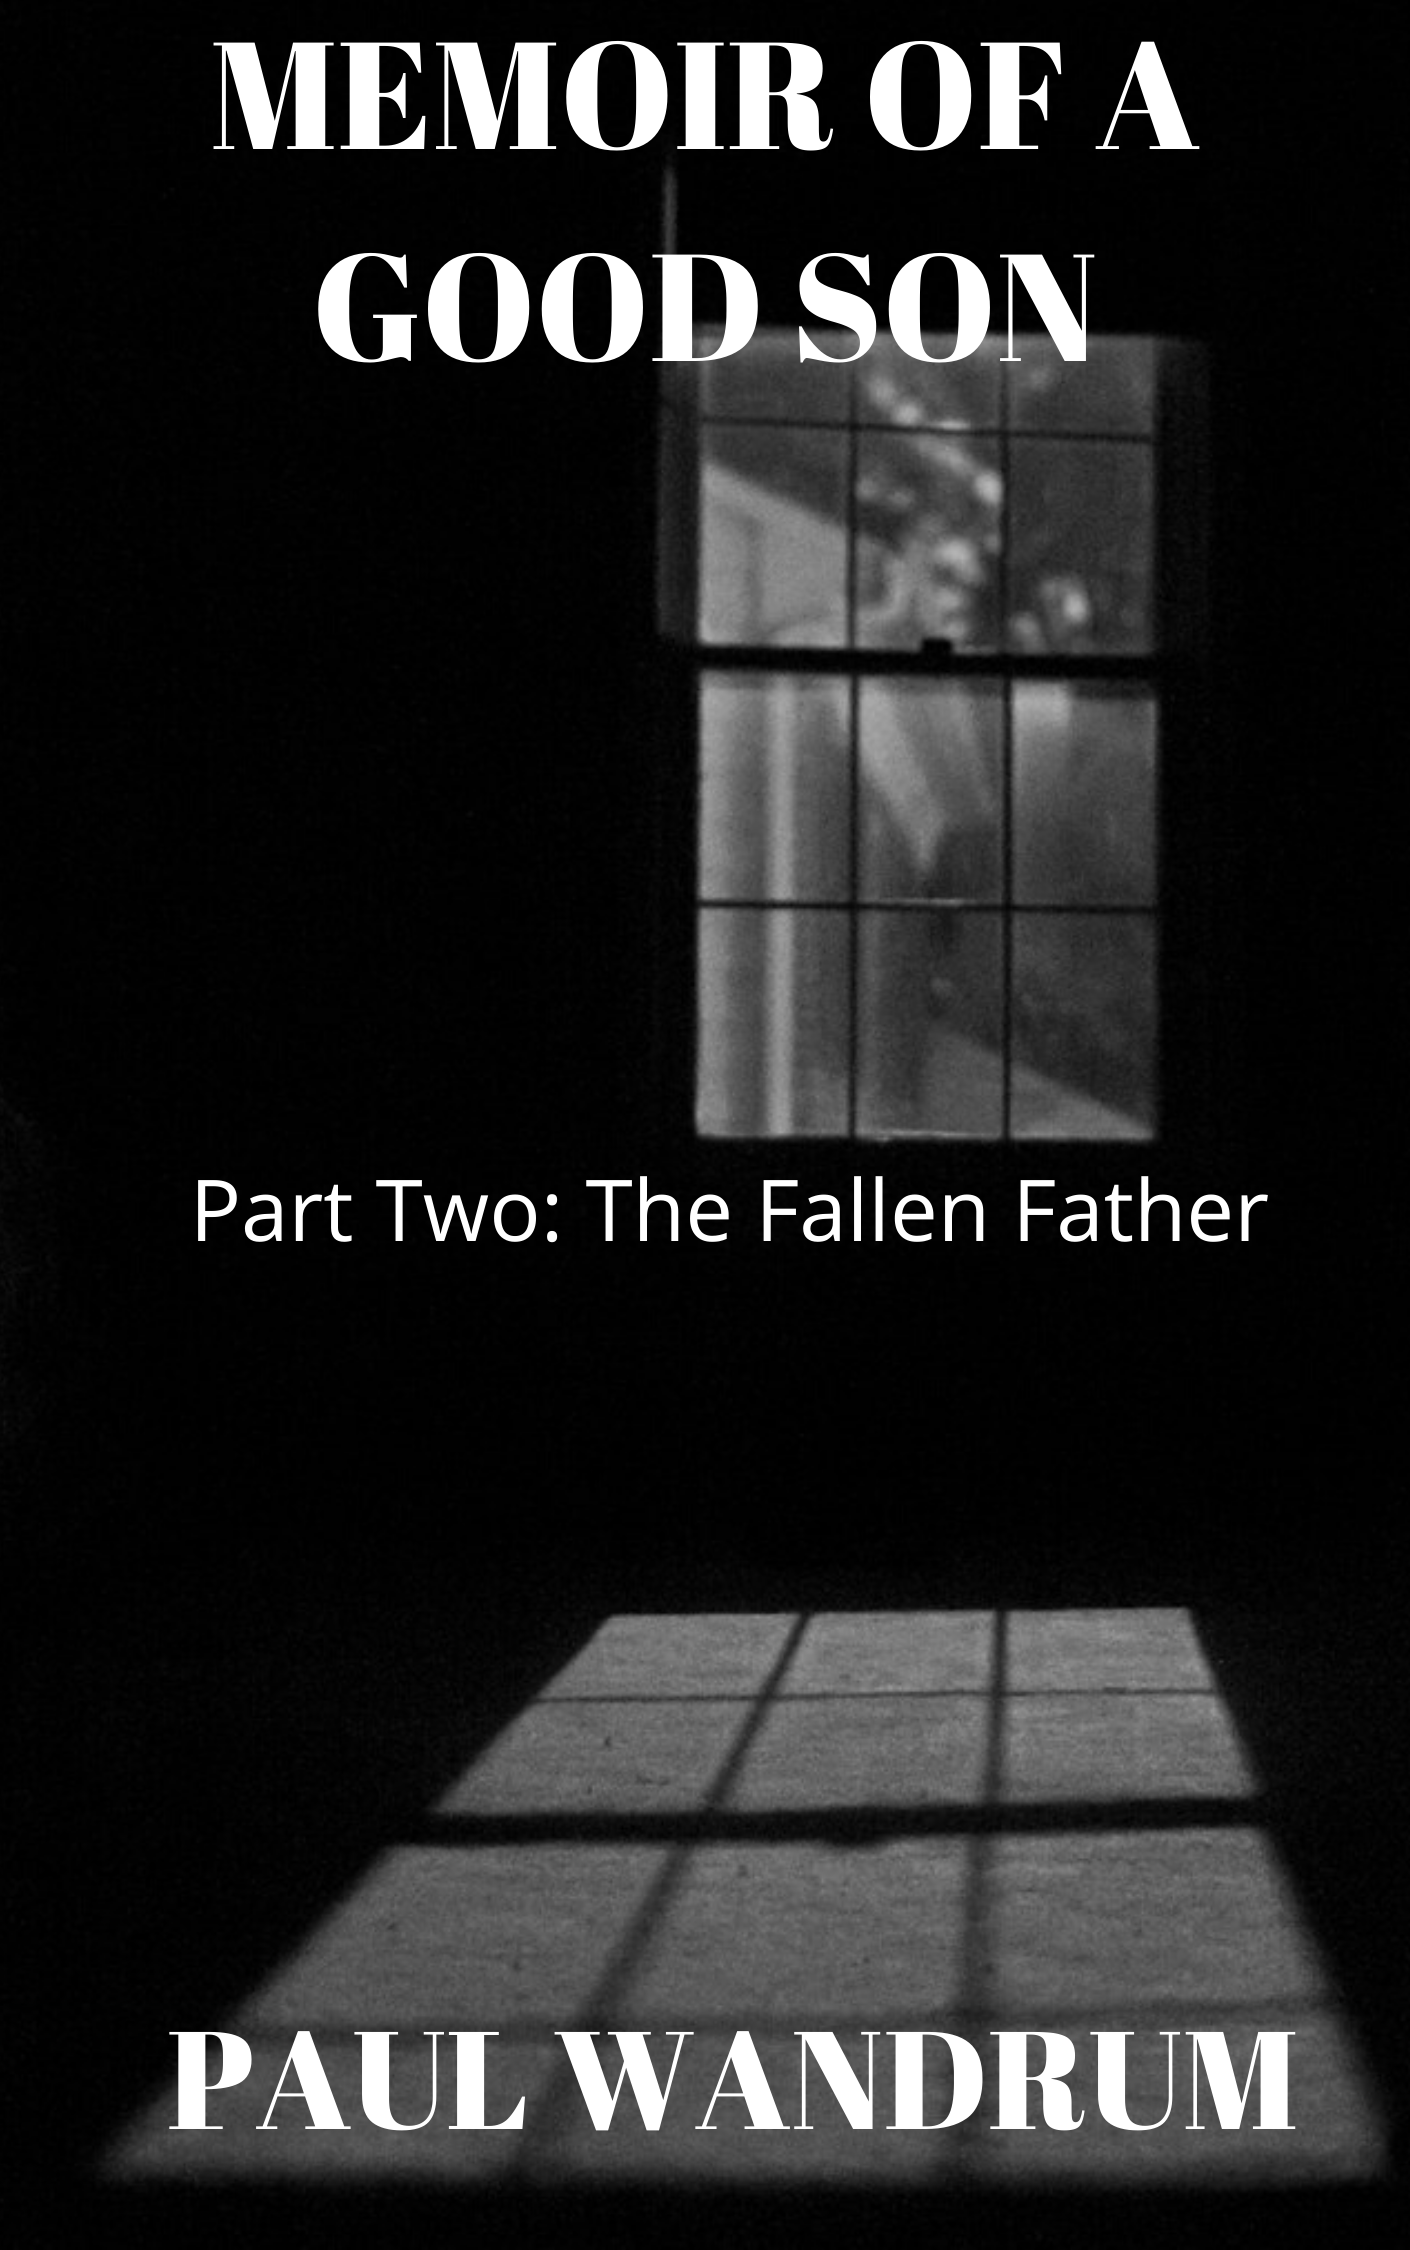 Memoir of Good Son Part Two: The Fallen Father